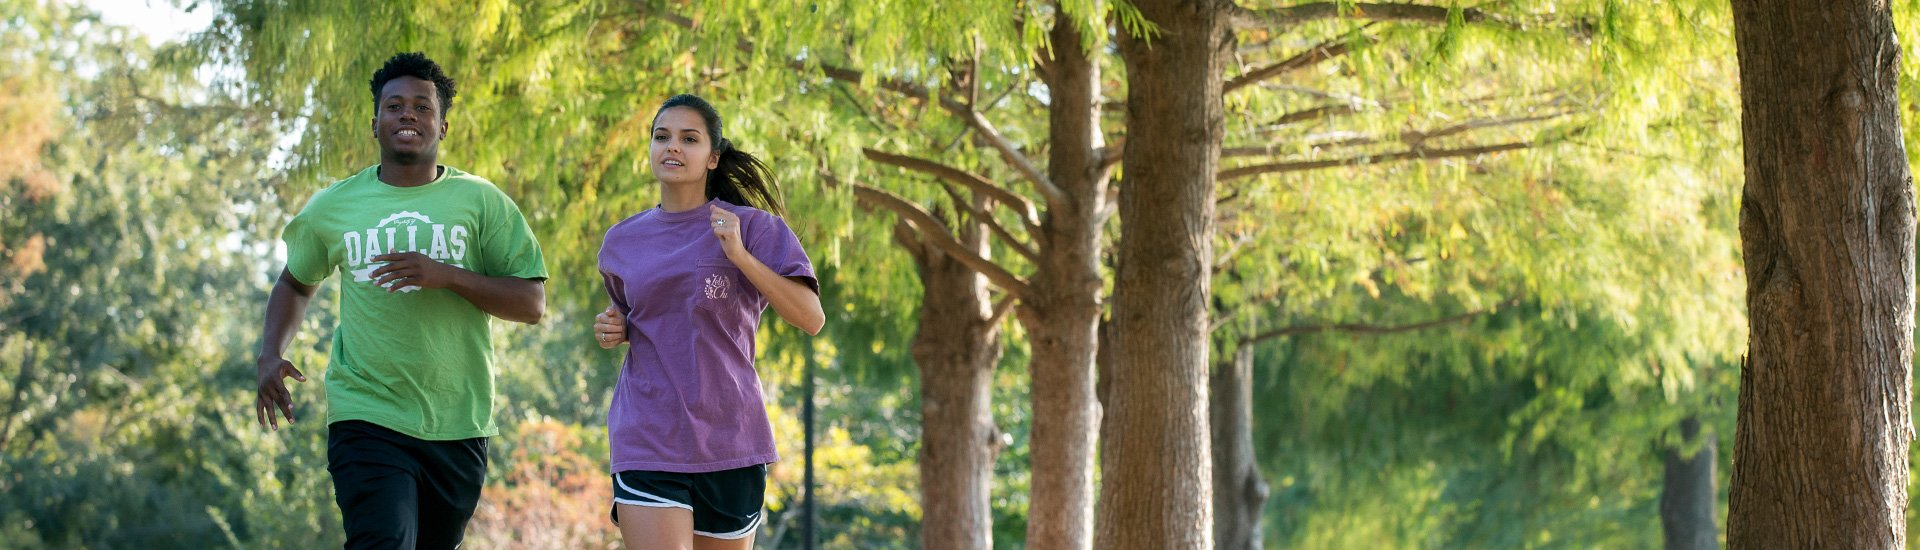 DBU Students running on fitness trail on campus picture